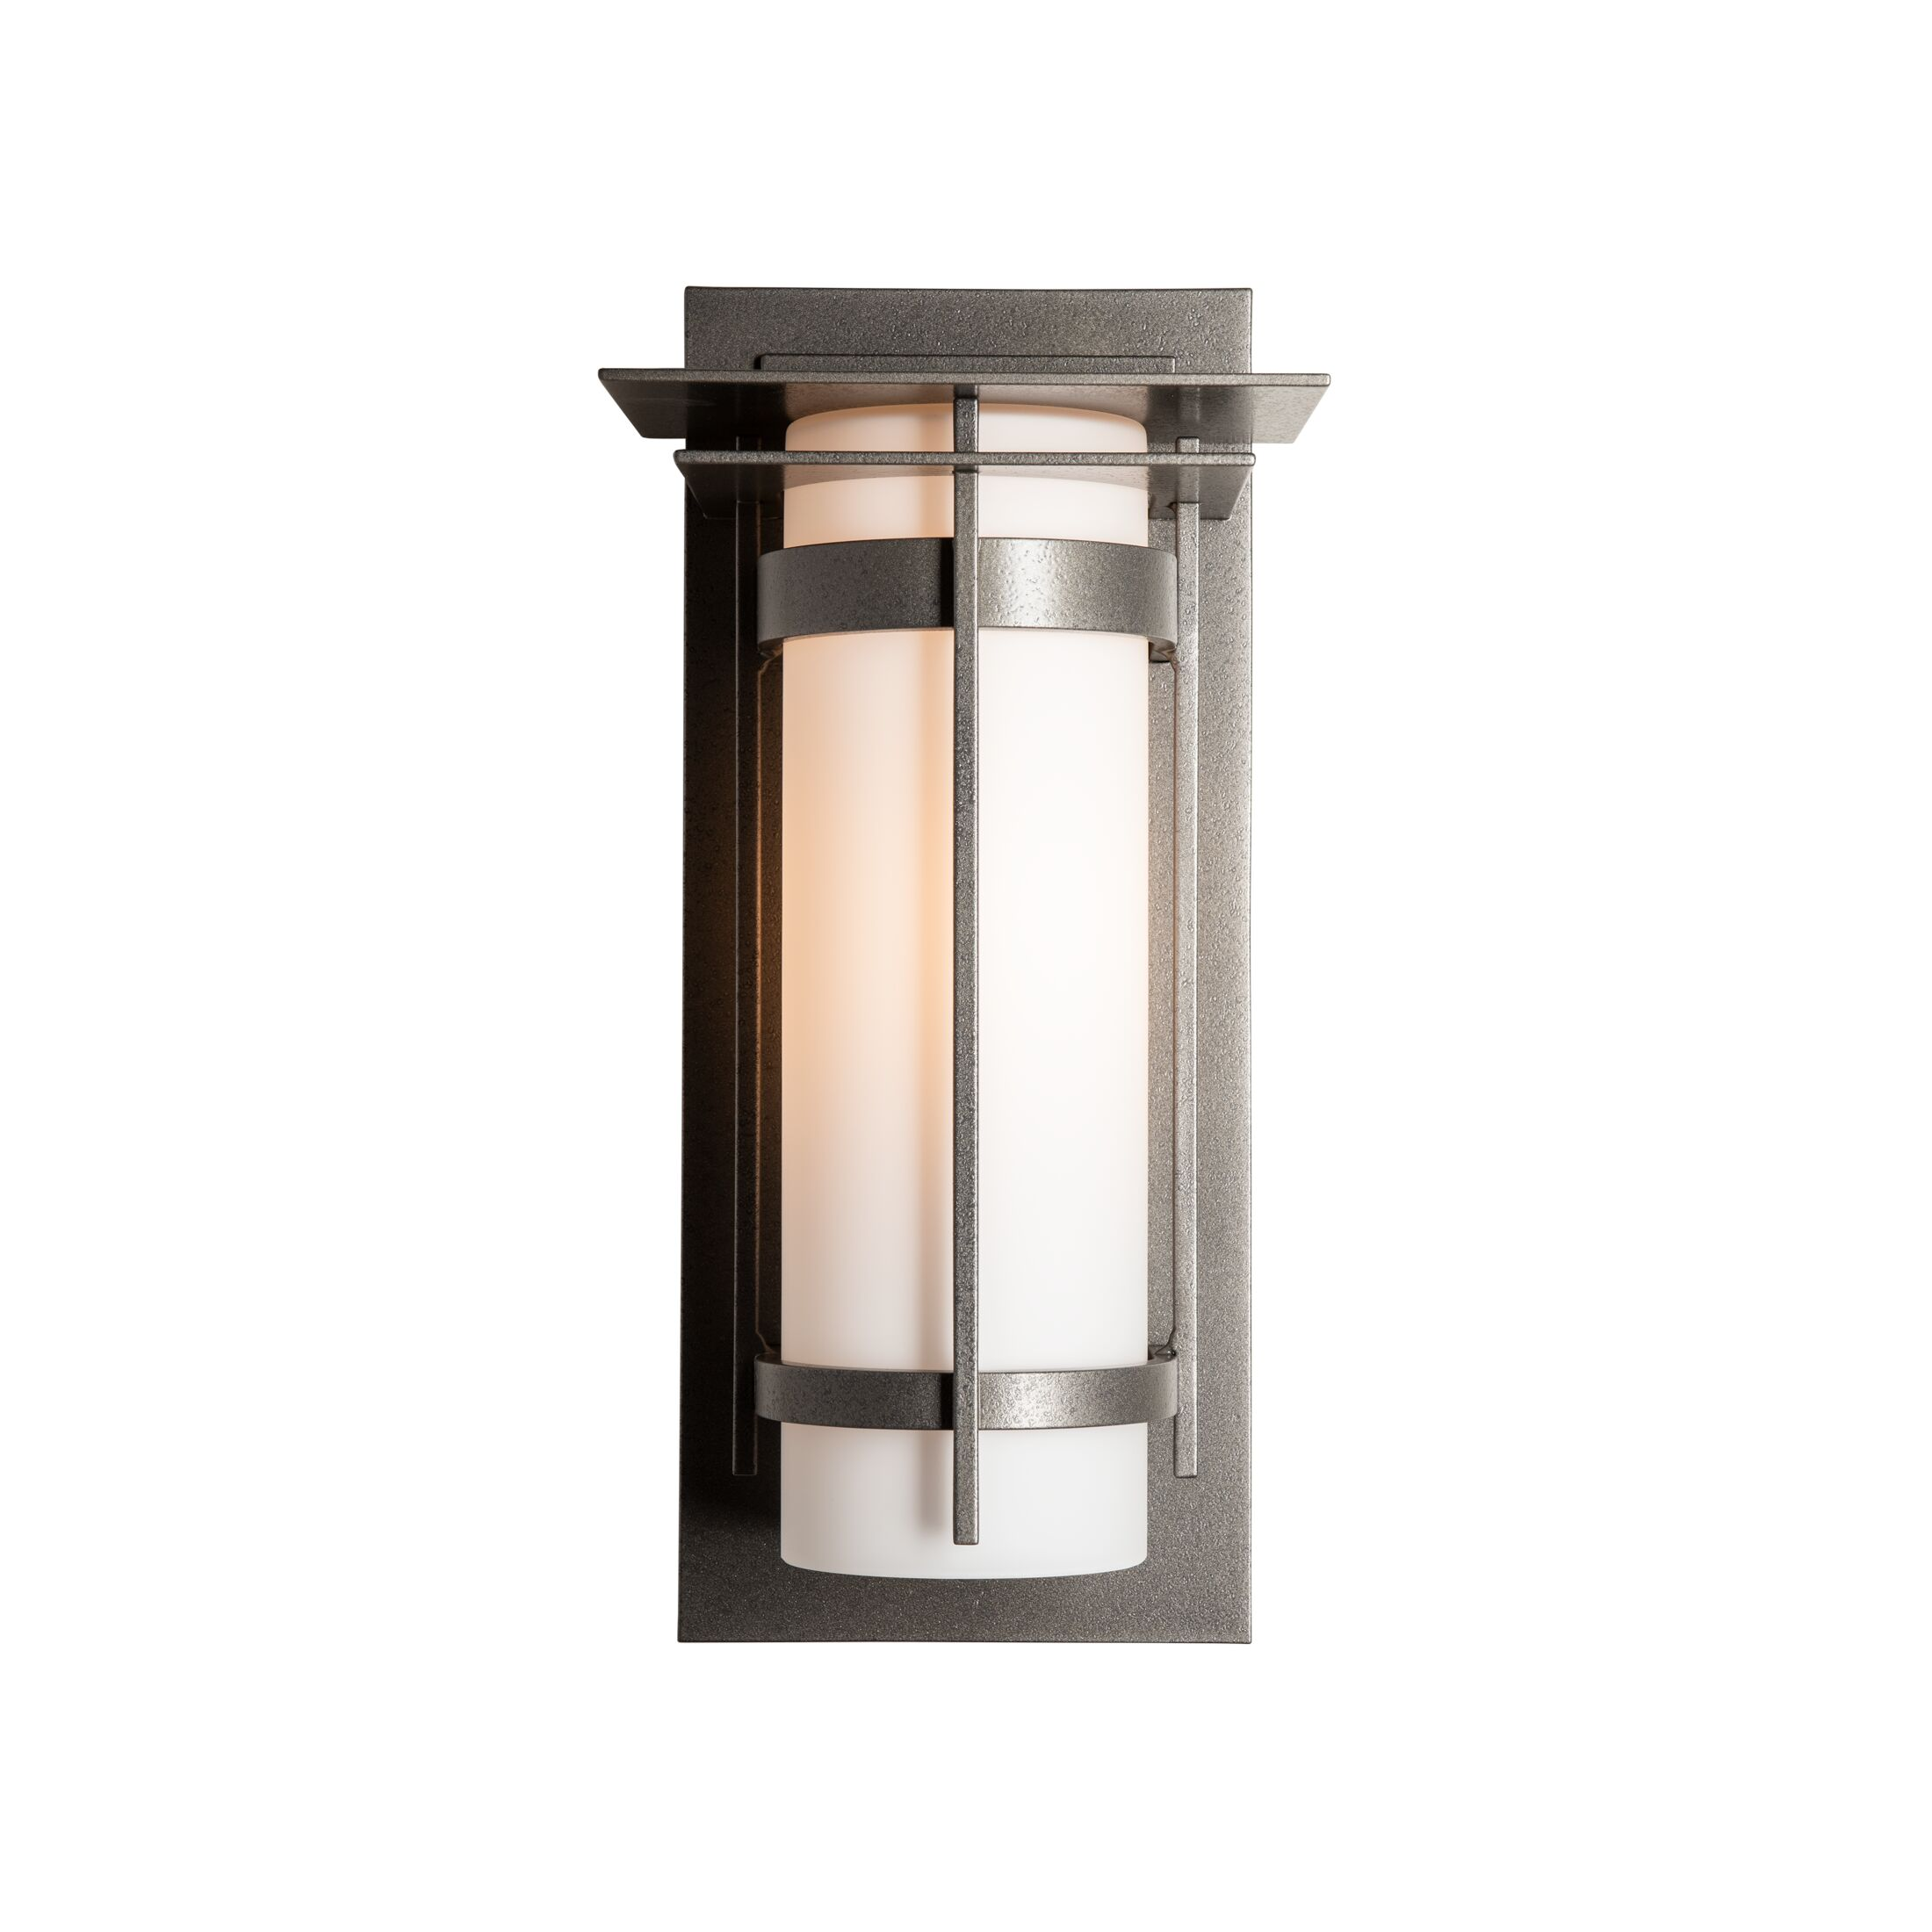 Product Detail: Banded with Top Plate Outdoor Sconce